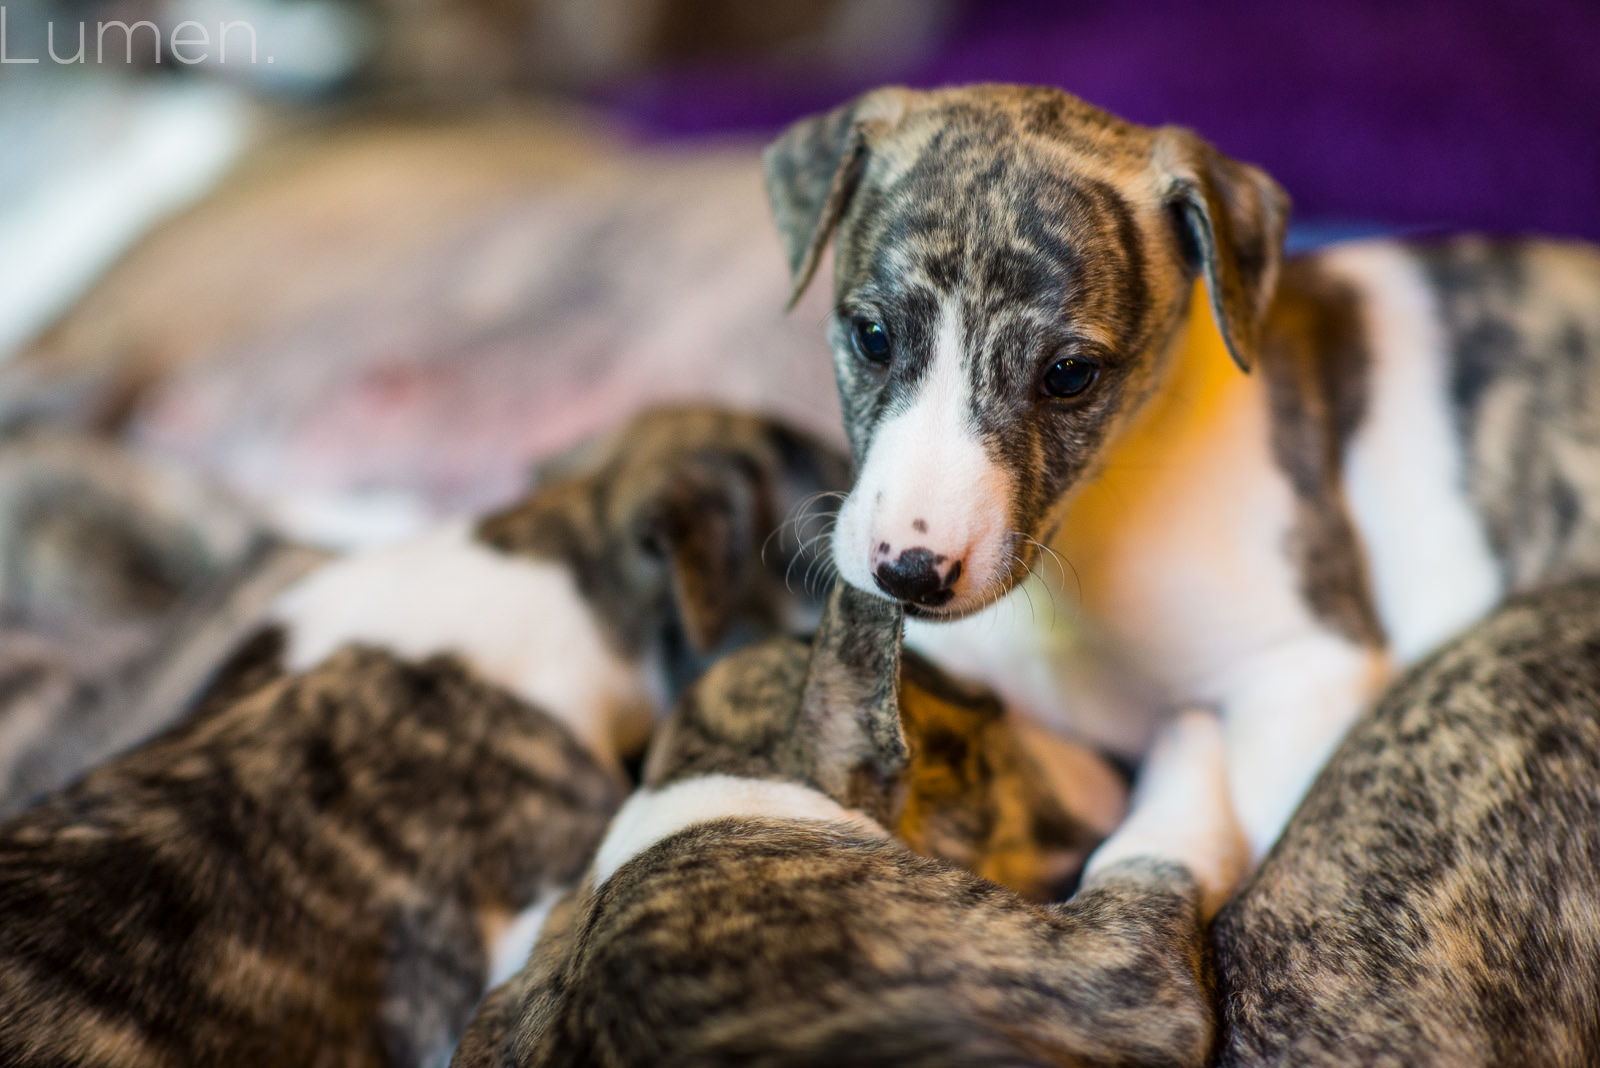 northwind whippets, puppy preview, lumen photography, adventurous photography, couture, duluth, minneapolis, minnesota, whippet, dog